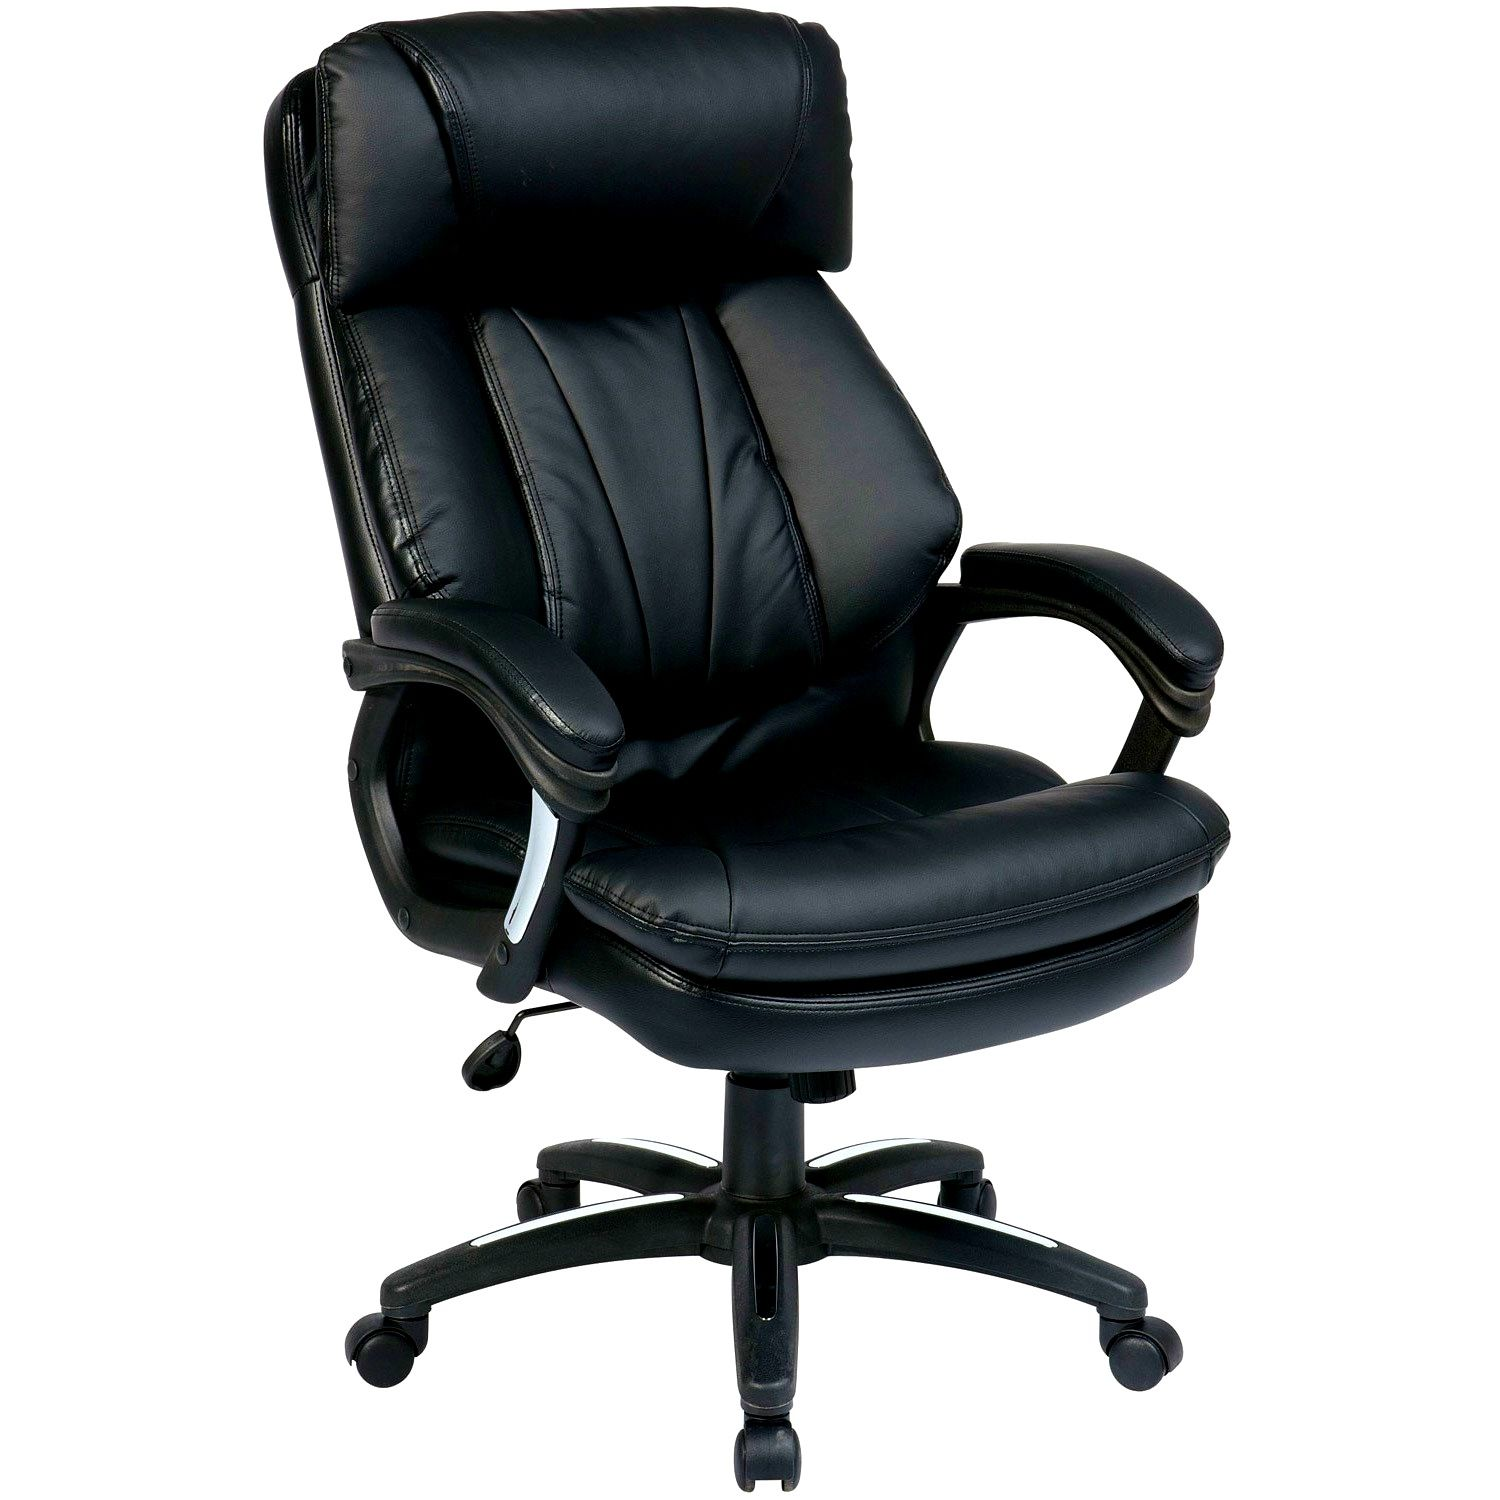 Hon Oversized Office Chairs (With images) Office chair